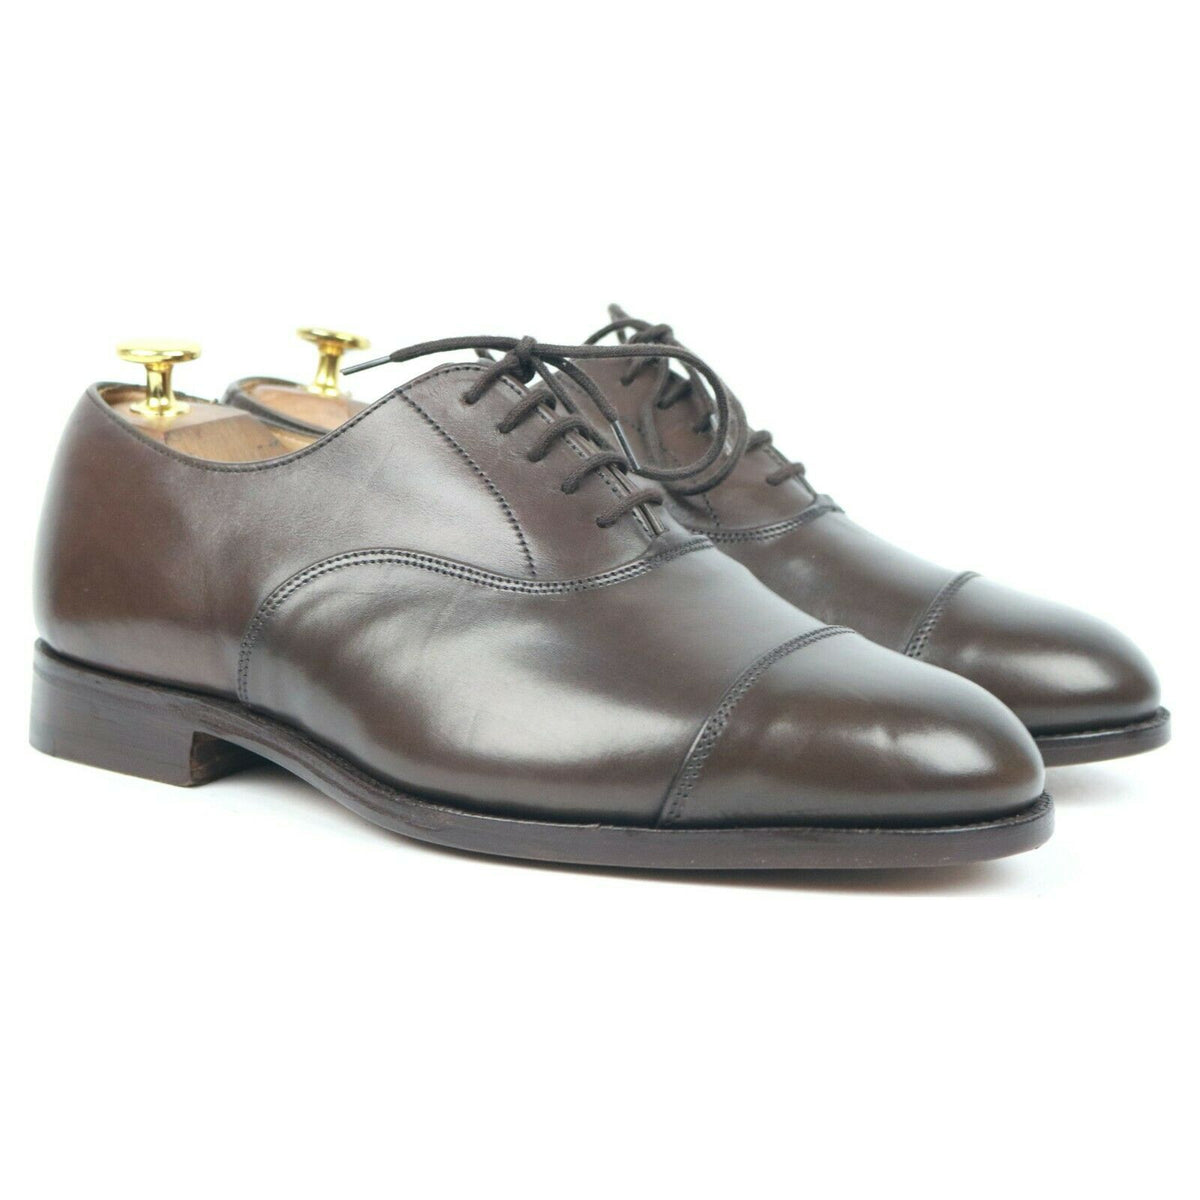 Tricker's 'Henley' Brown Leather Oxford UK 6.5